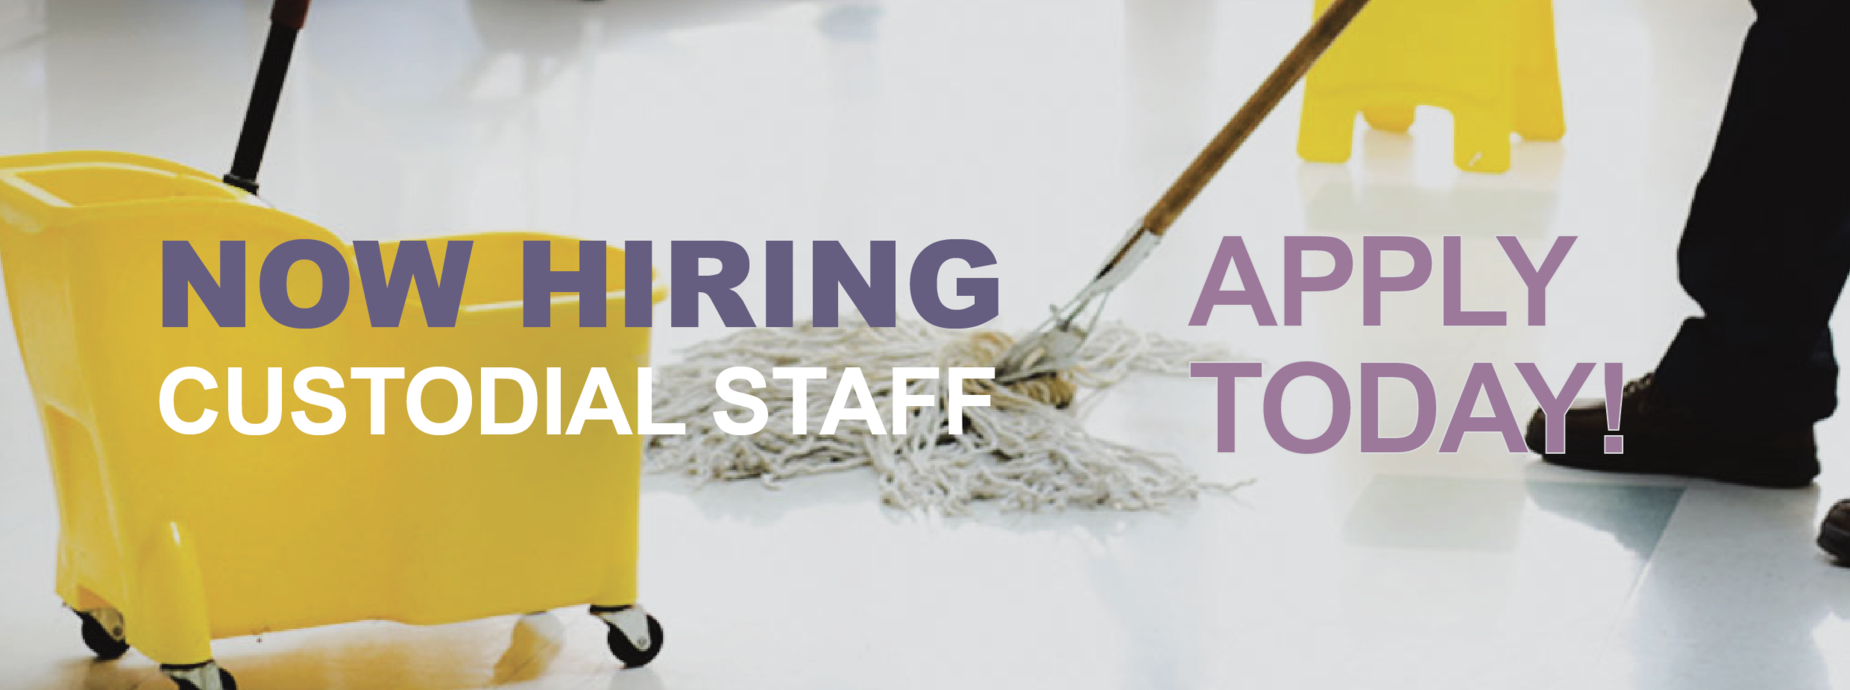 Now Hiring Custodial Staff